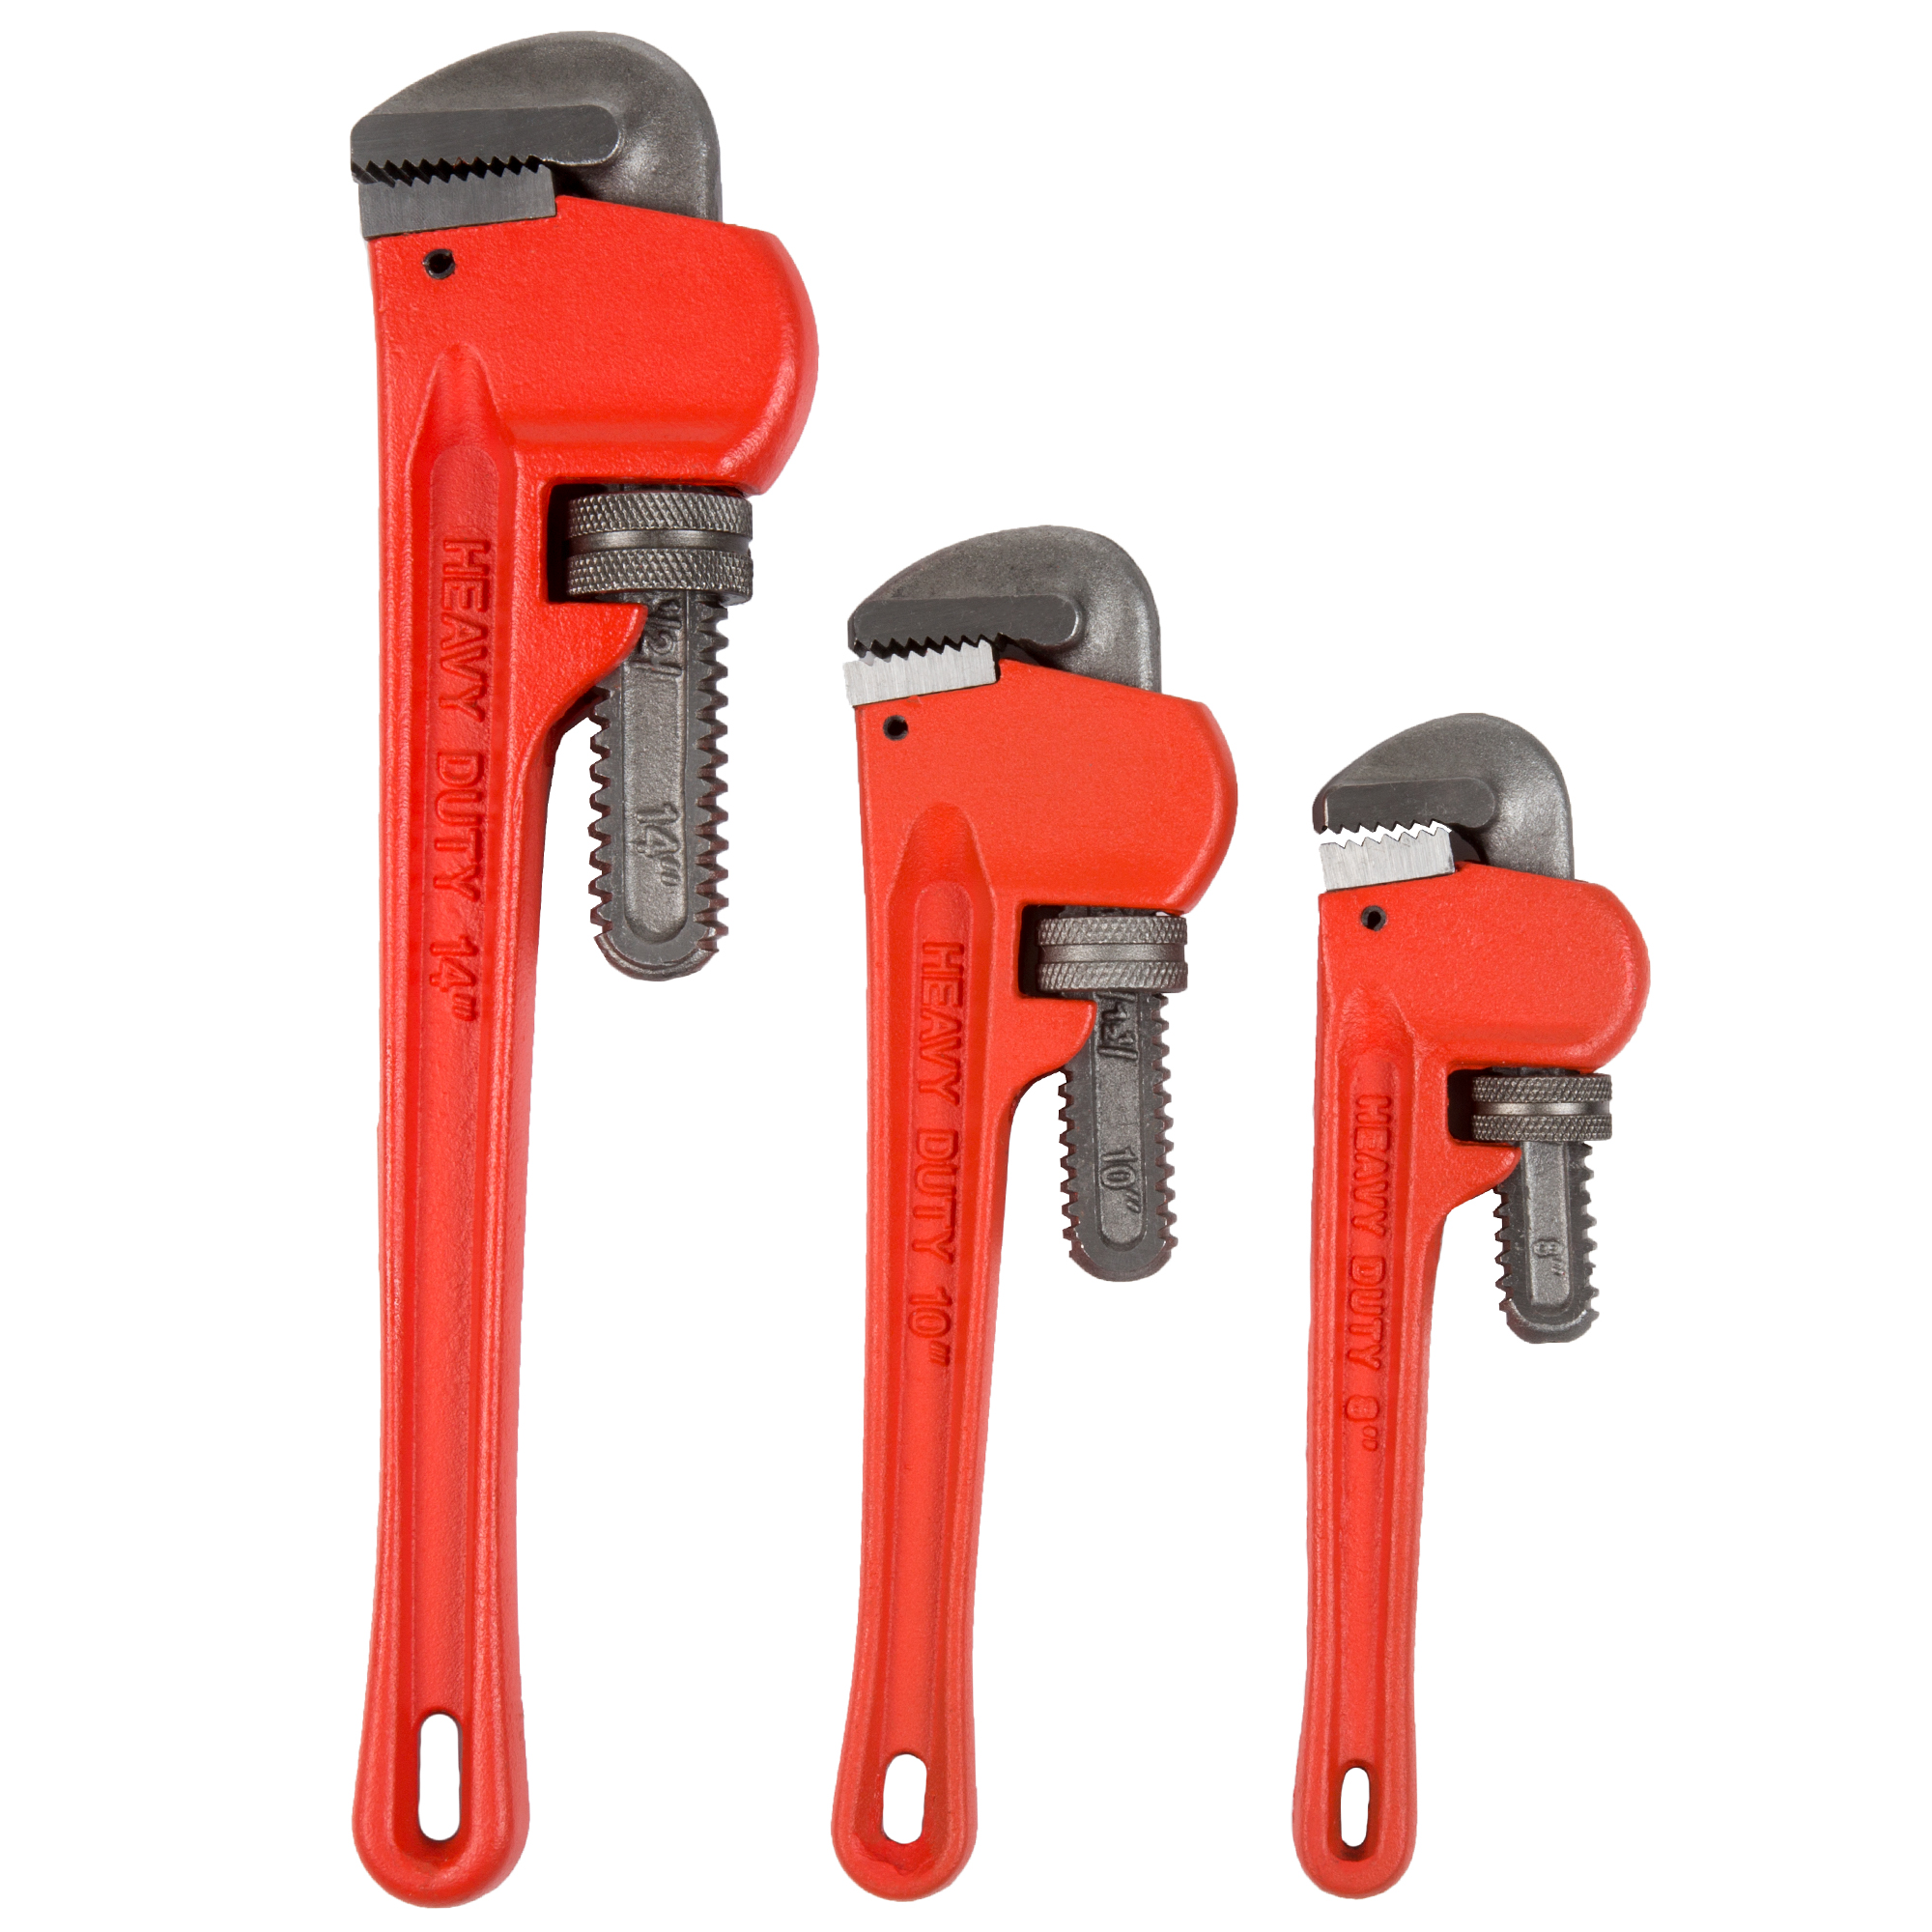 3 PC Heavy Duty Pipe Wrench Set with Storage Pouch by Stalwart by Trademark Global LLC